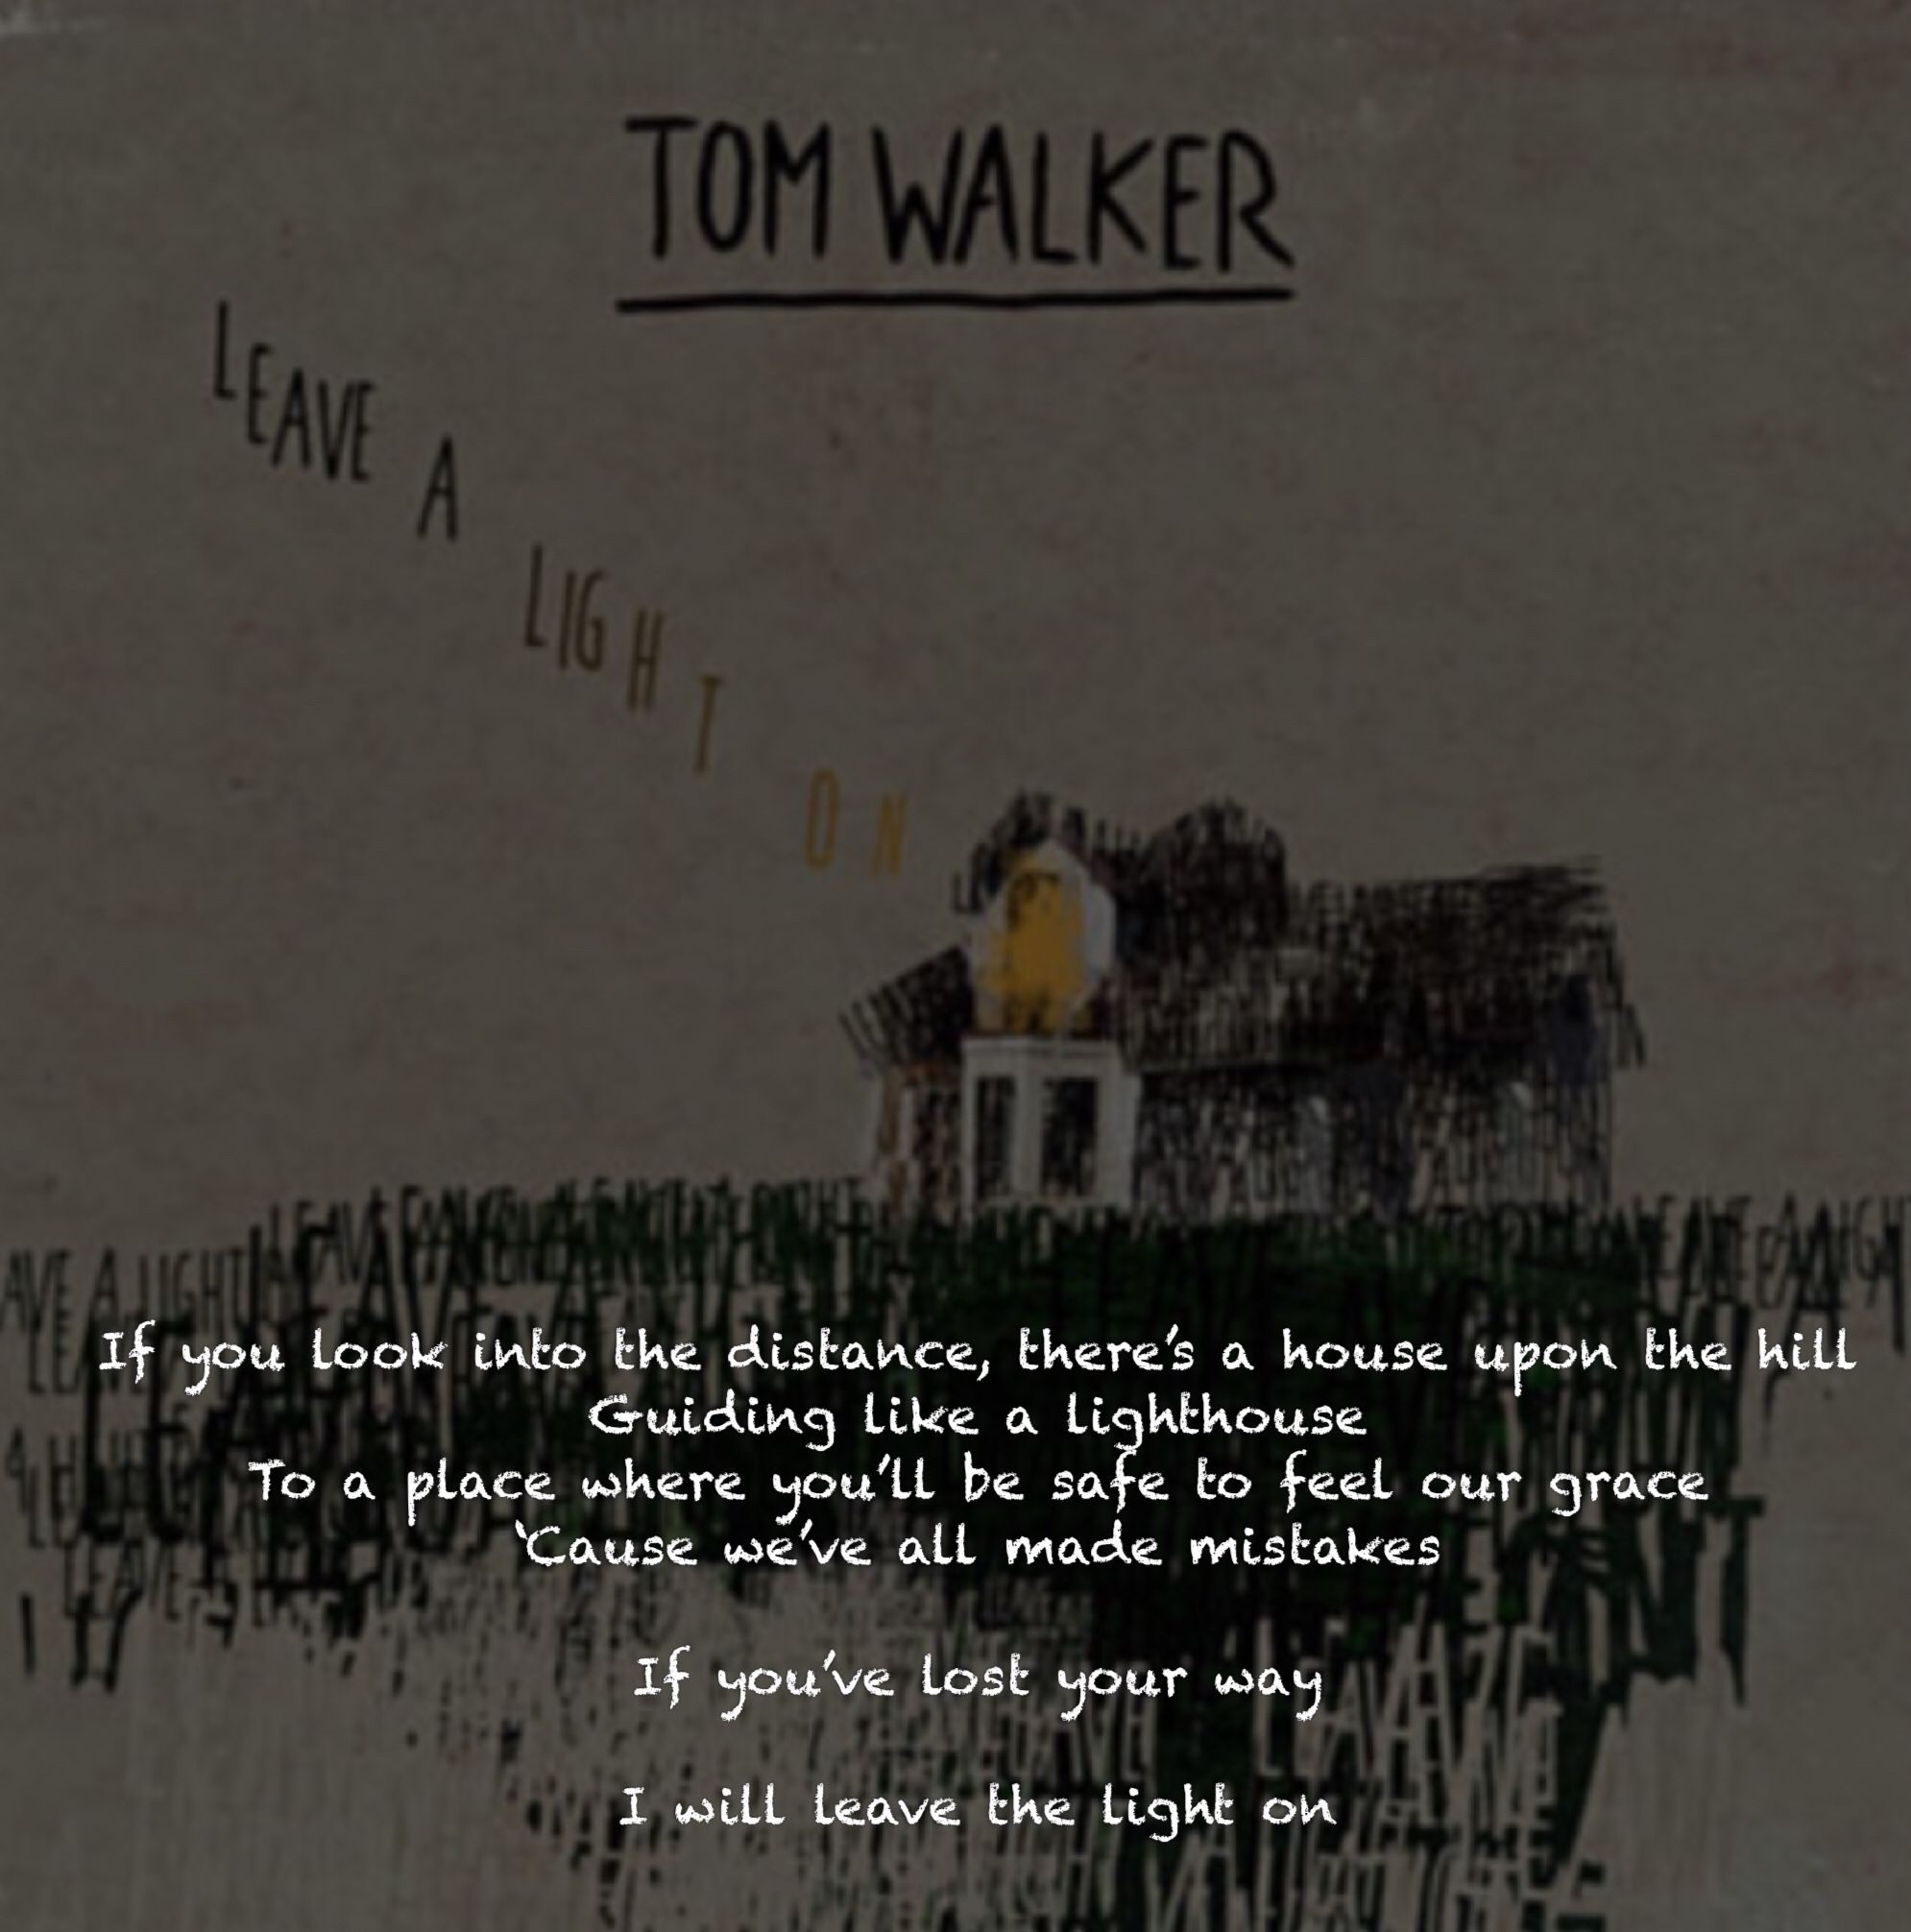 Leave A Light On Tom Walker Tom Walker Song Quotes Music Lyrics